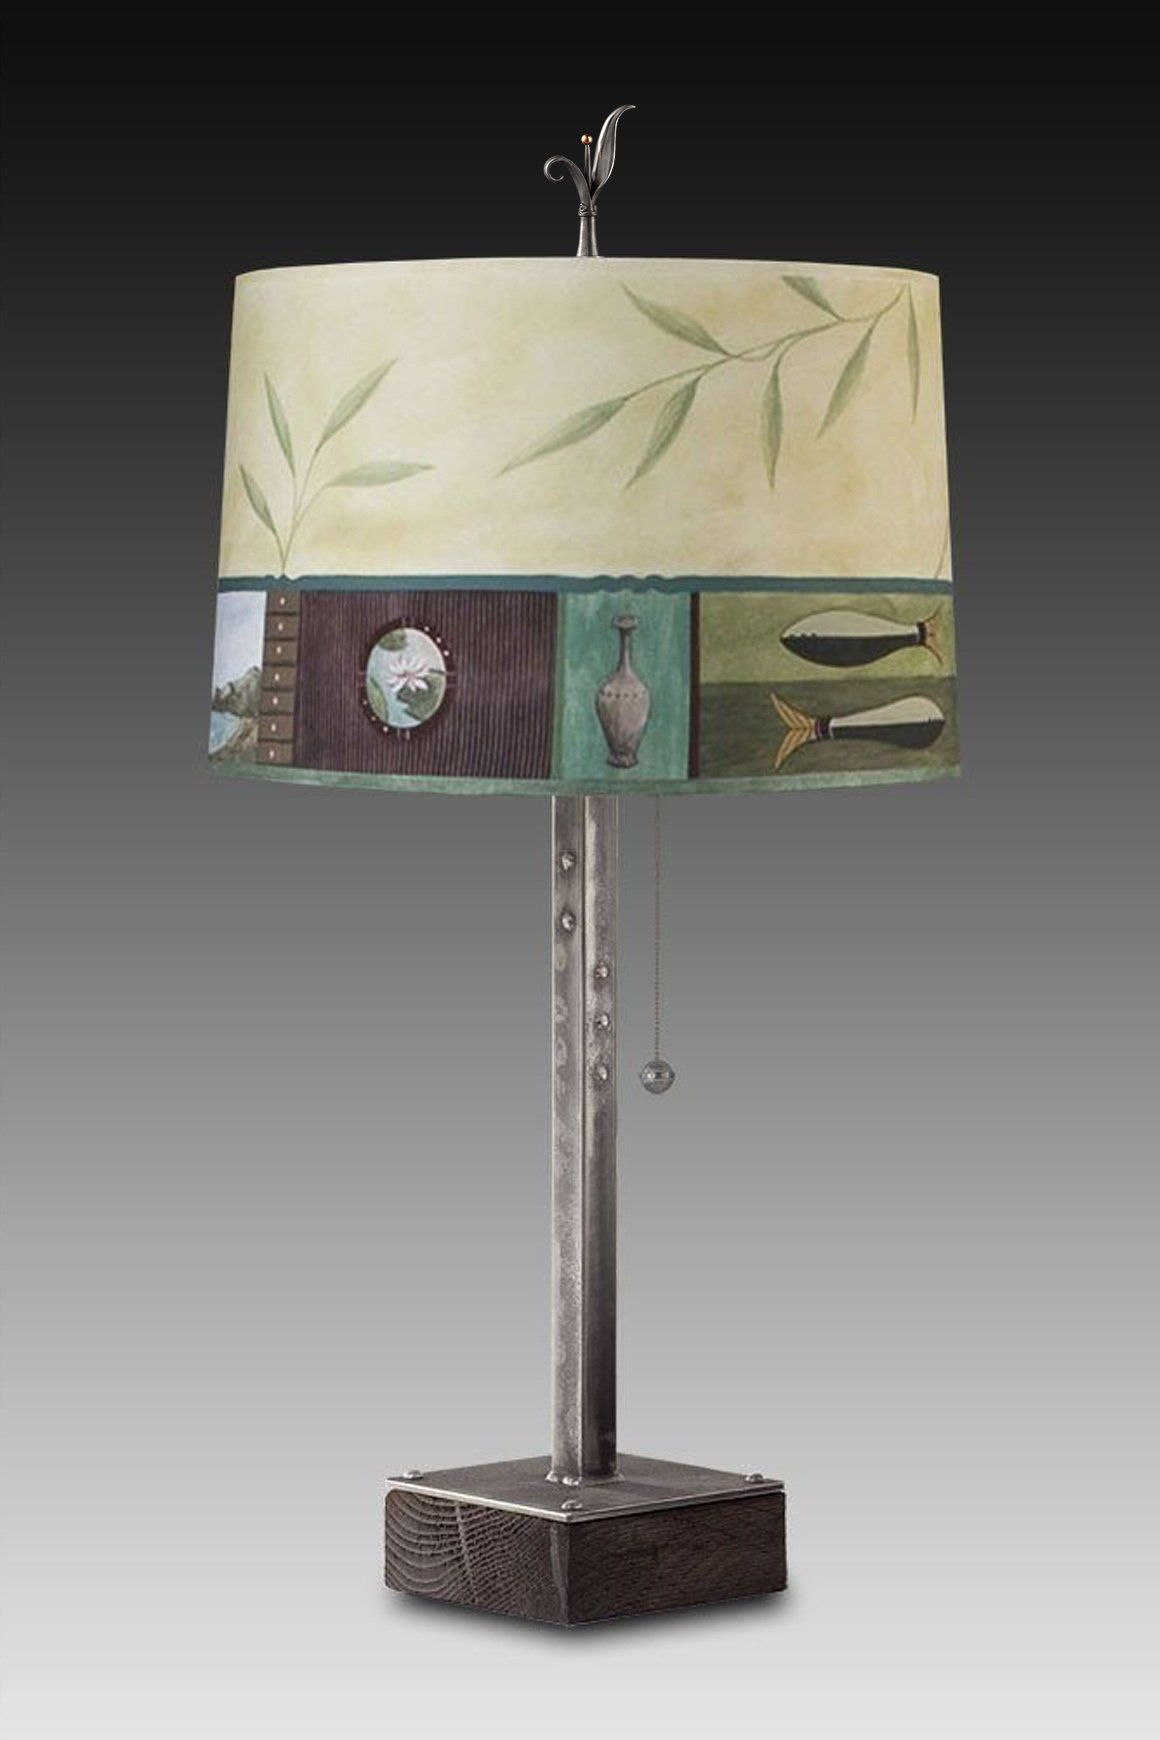 Steel Table Lamp on Wood with Large Drum Shade in Twin Fish